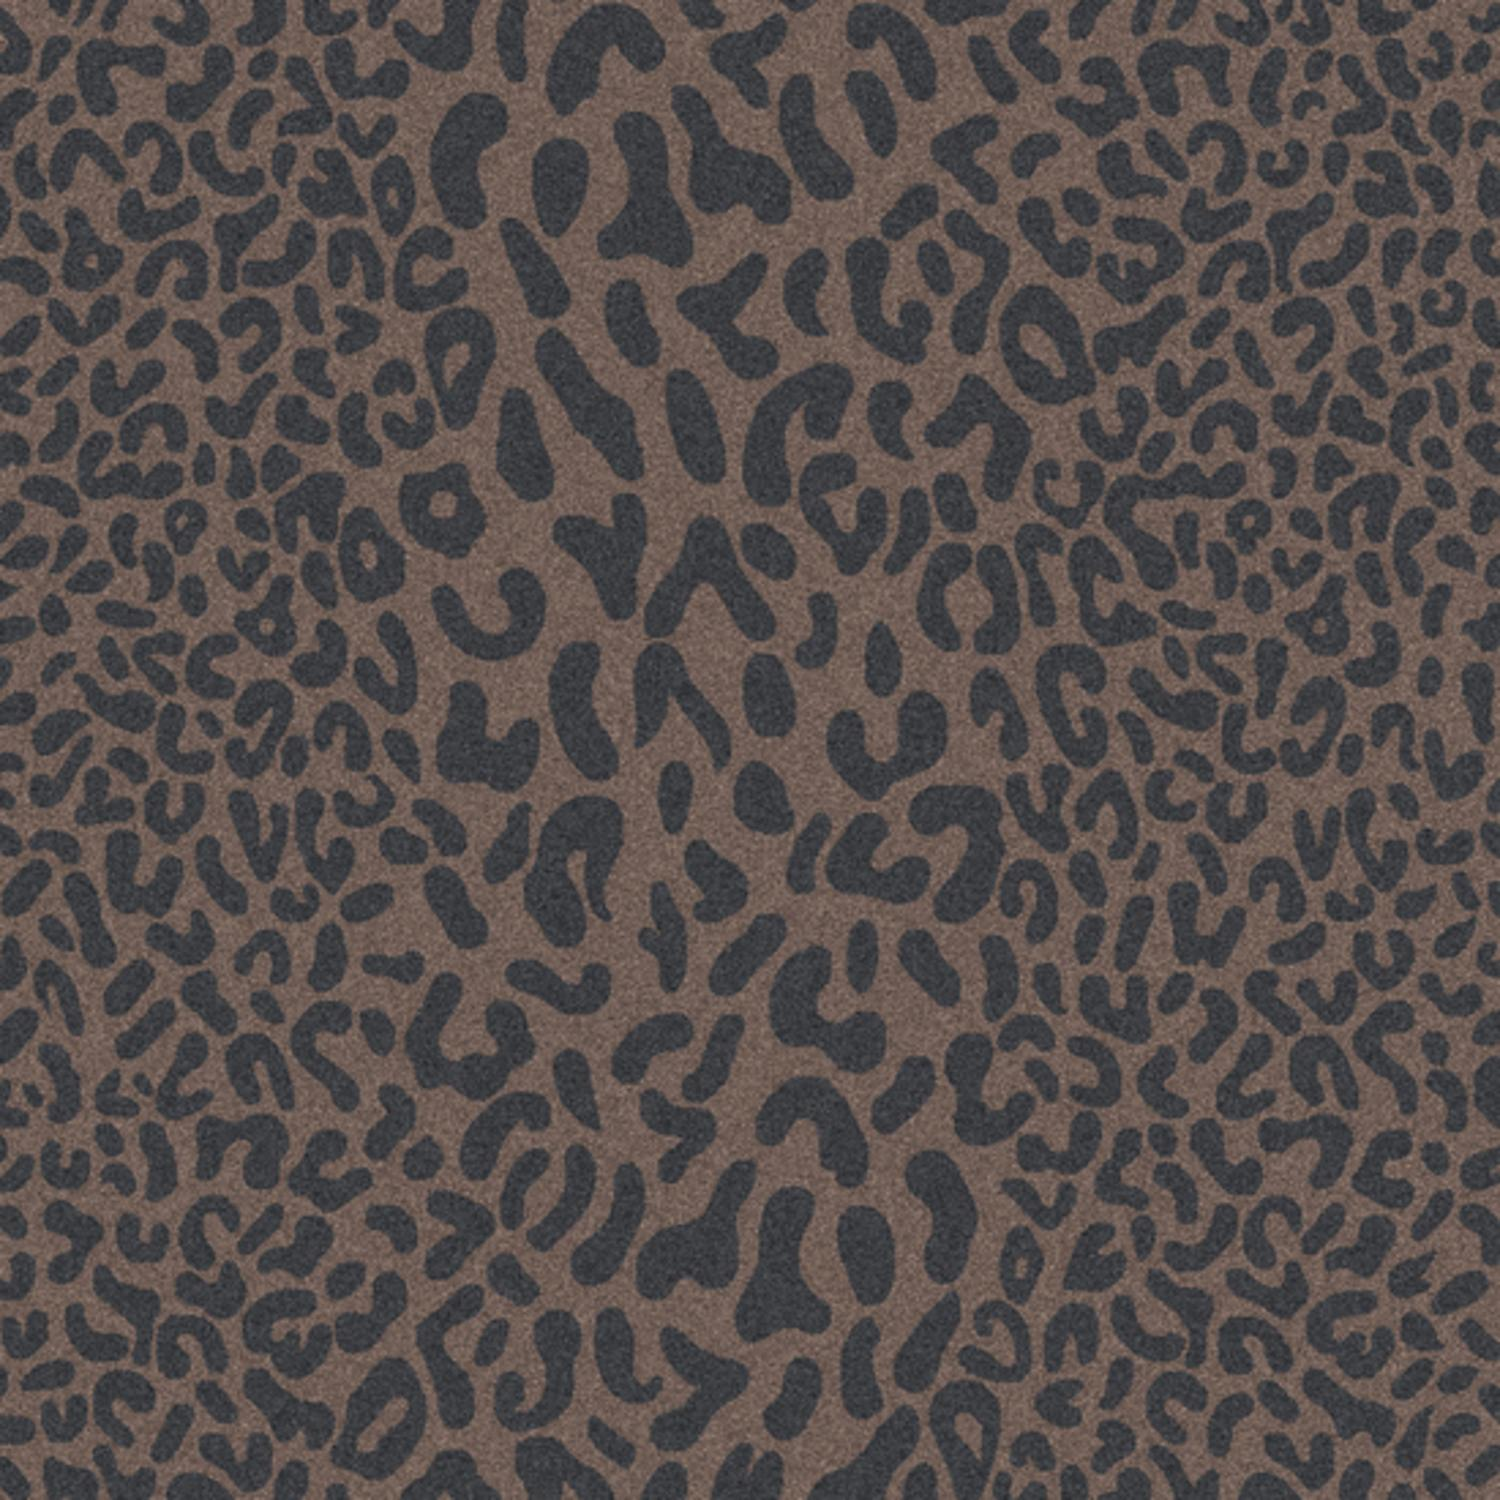 2' x 4' Les Animaux Gray and Tan Cheetah Hand Tufted Hearth Wool Area Throw Rug